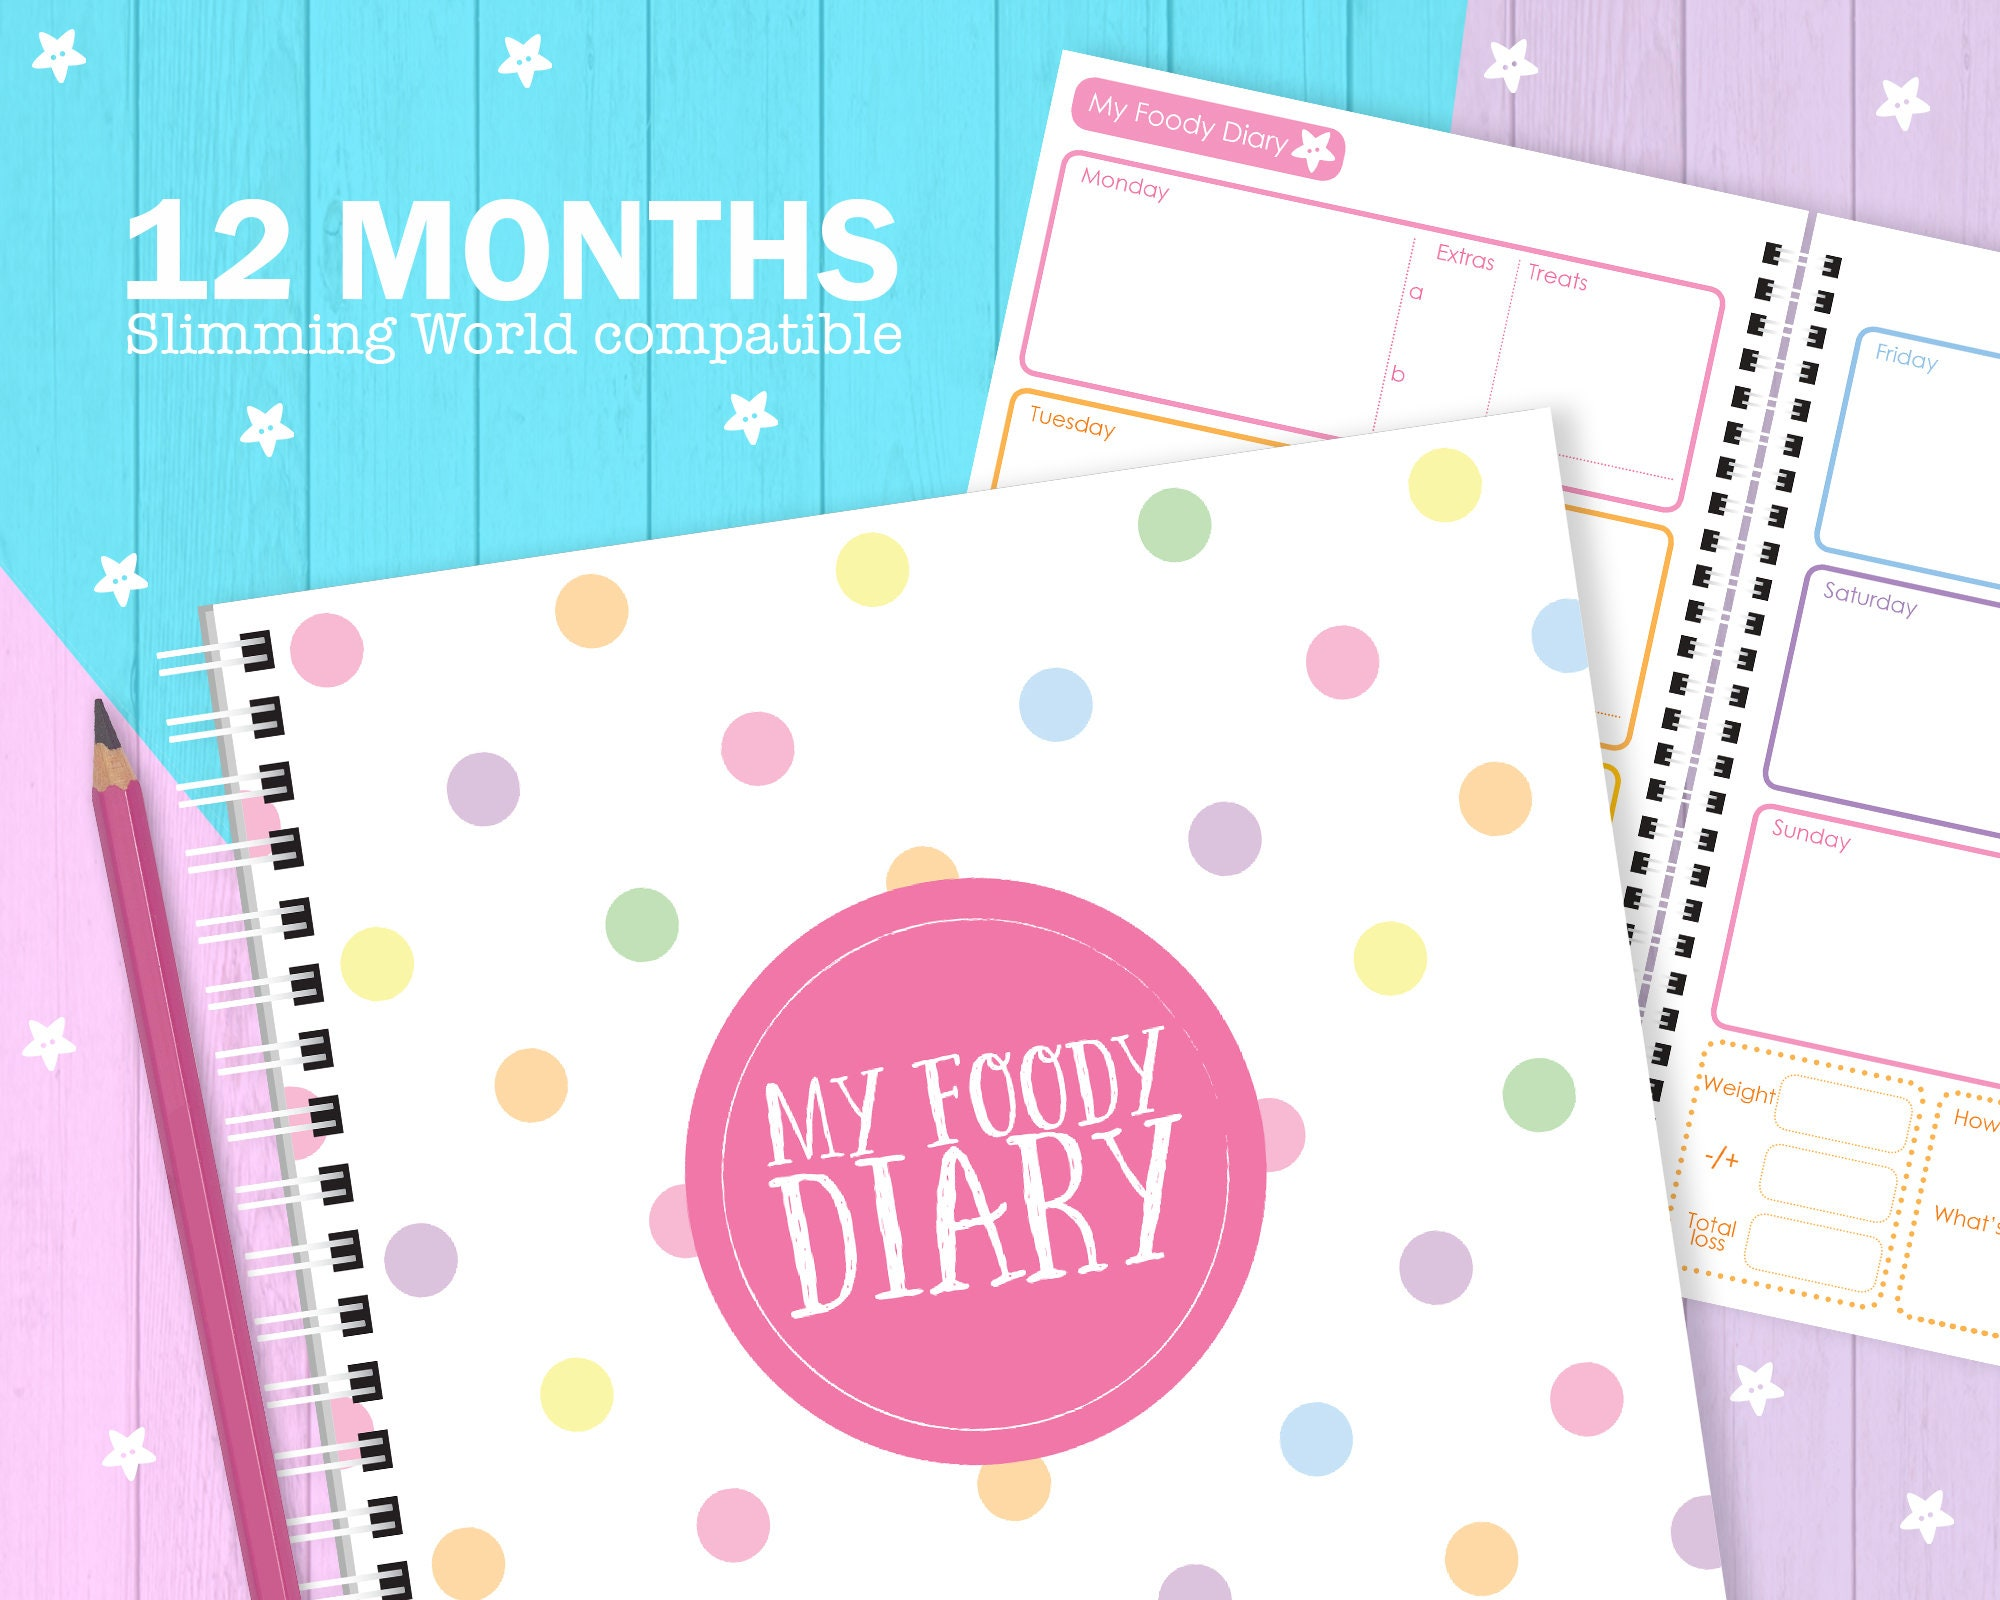 My Foody Diary: compatible with Slimming World 12 months